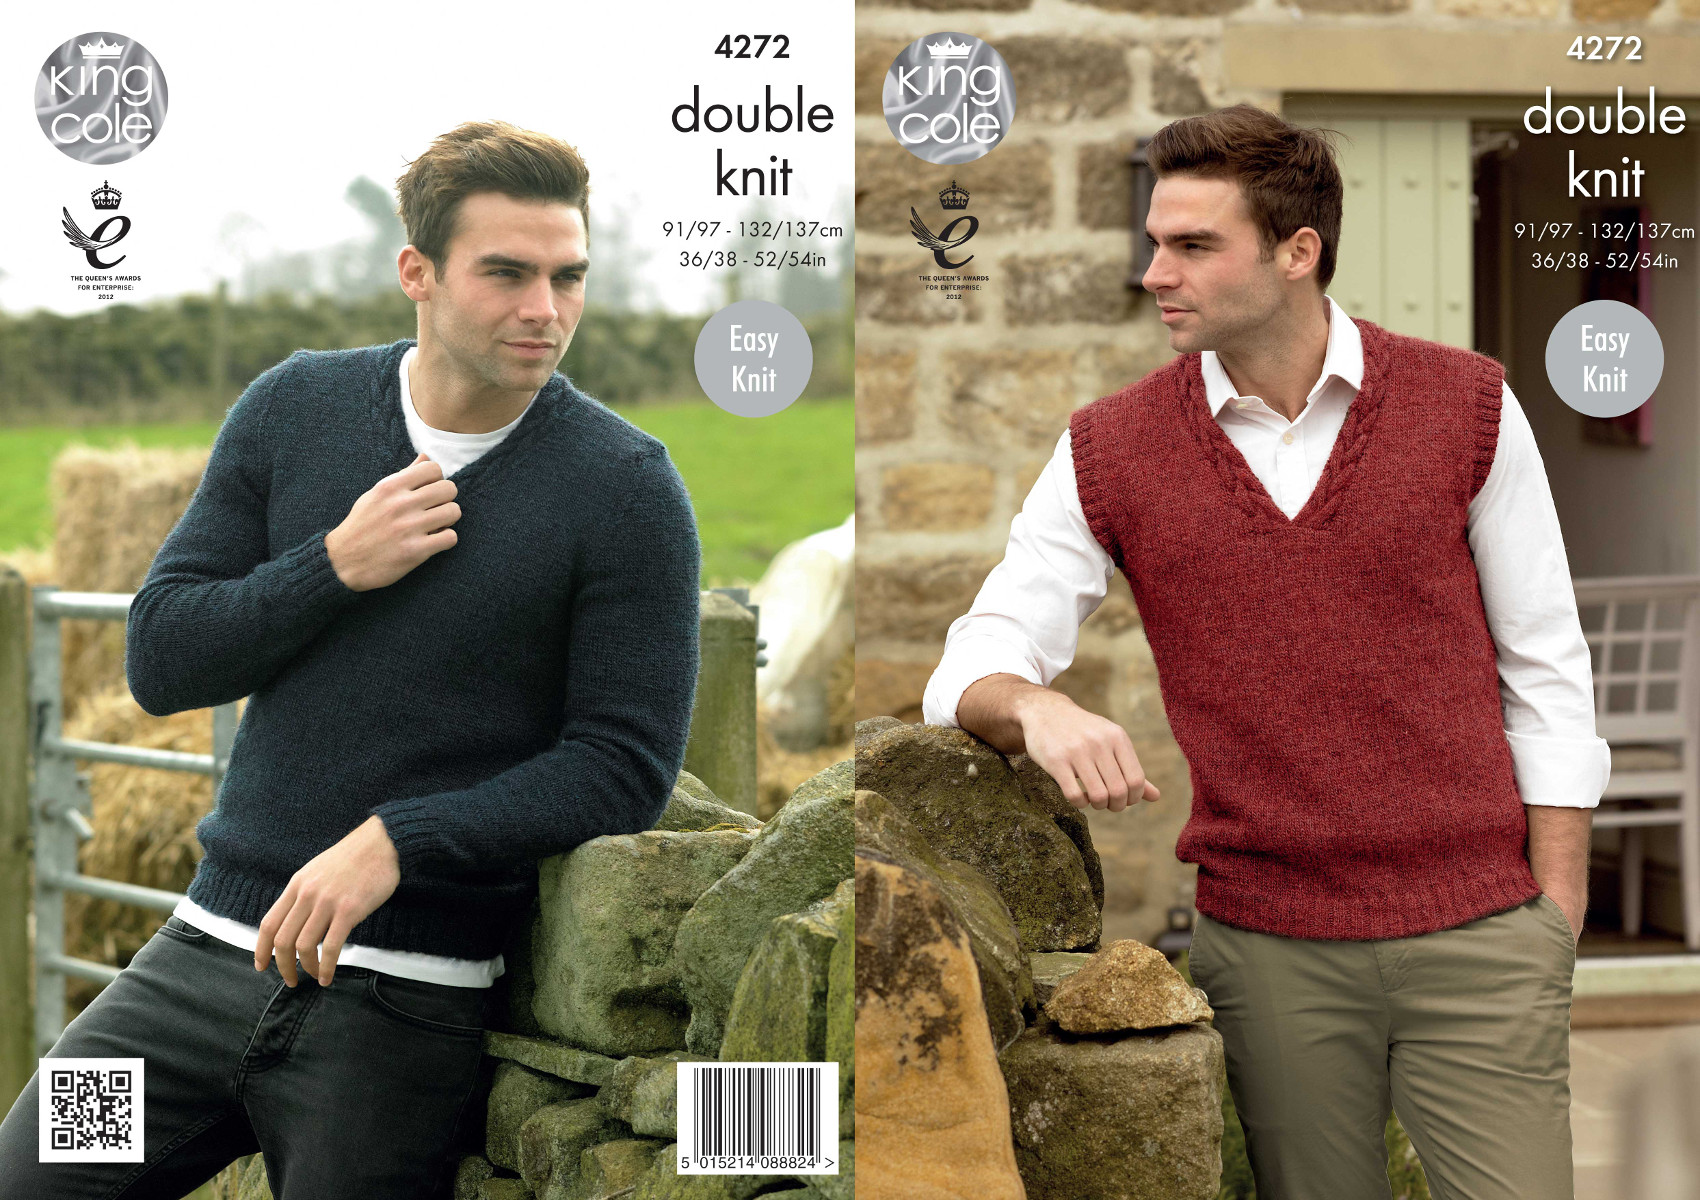 King cole mens double knitting pattern easy knit v neck sweater king cole mens double knitting pattern easy knit v neck sweater slipover dk 4272 bankloansurffo Image collections